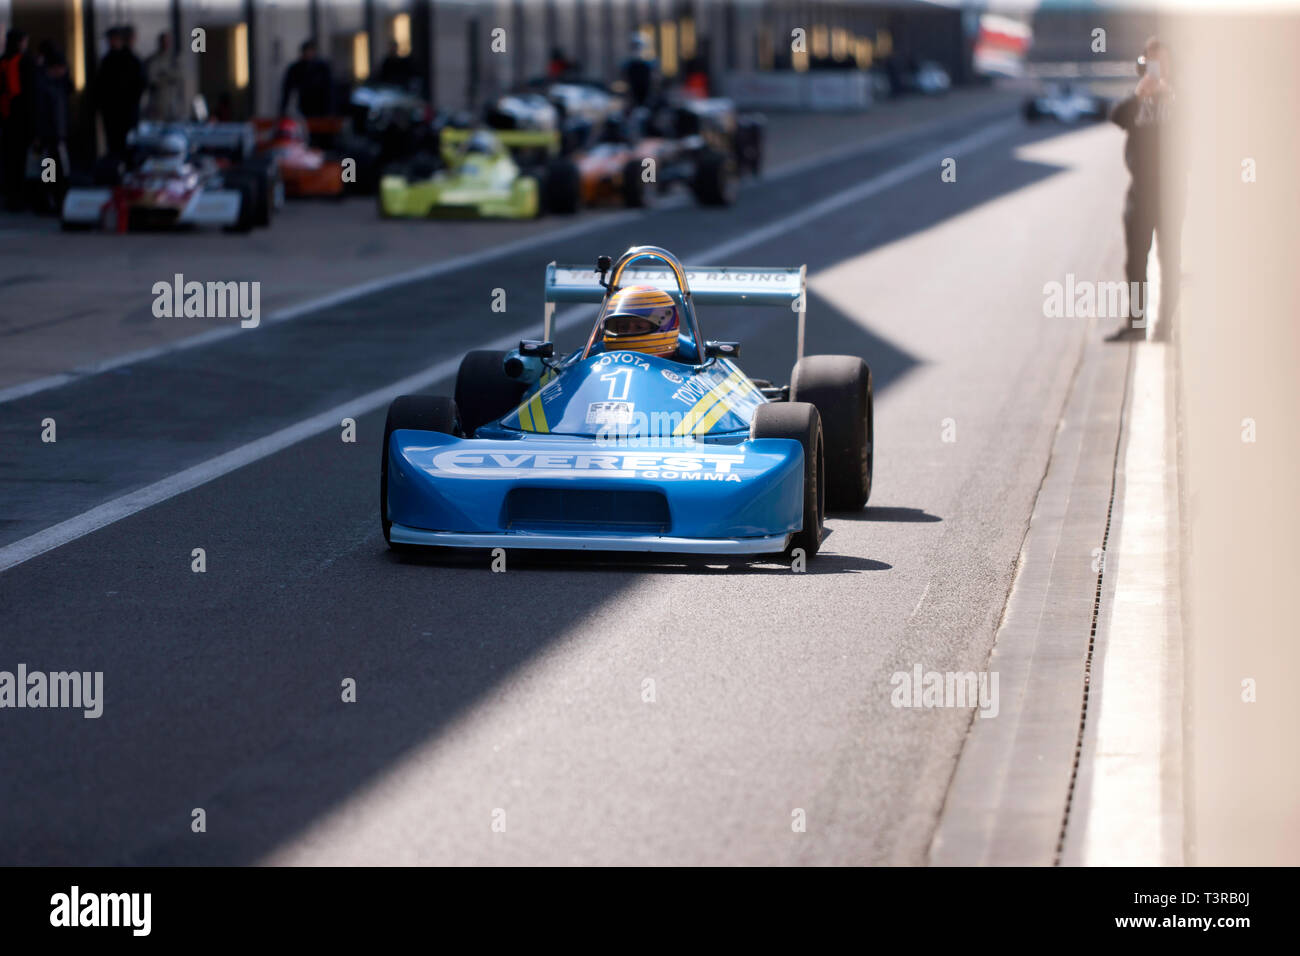 View of Kieth White driving his 1977, Ralt RT1 Formula 3 race car down the Pit Lane, at the 2019 Silverstone Classic media day/ Test Day - Stock Image